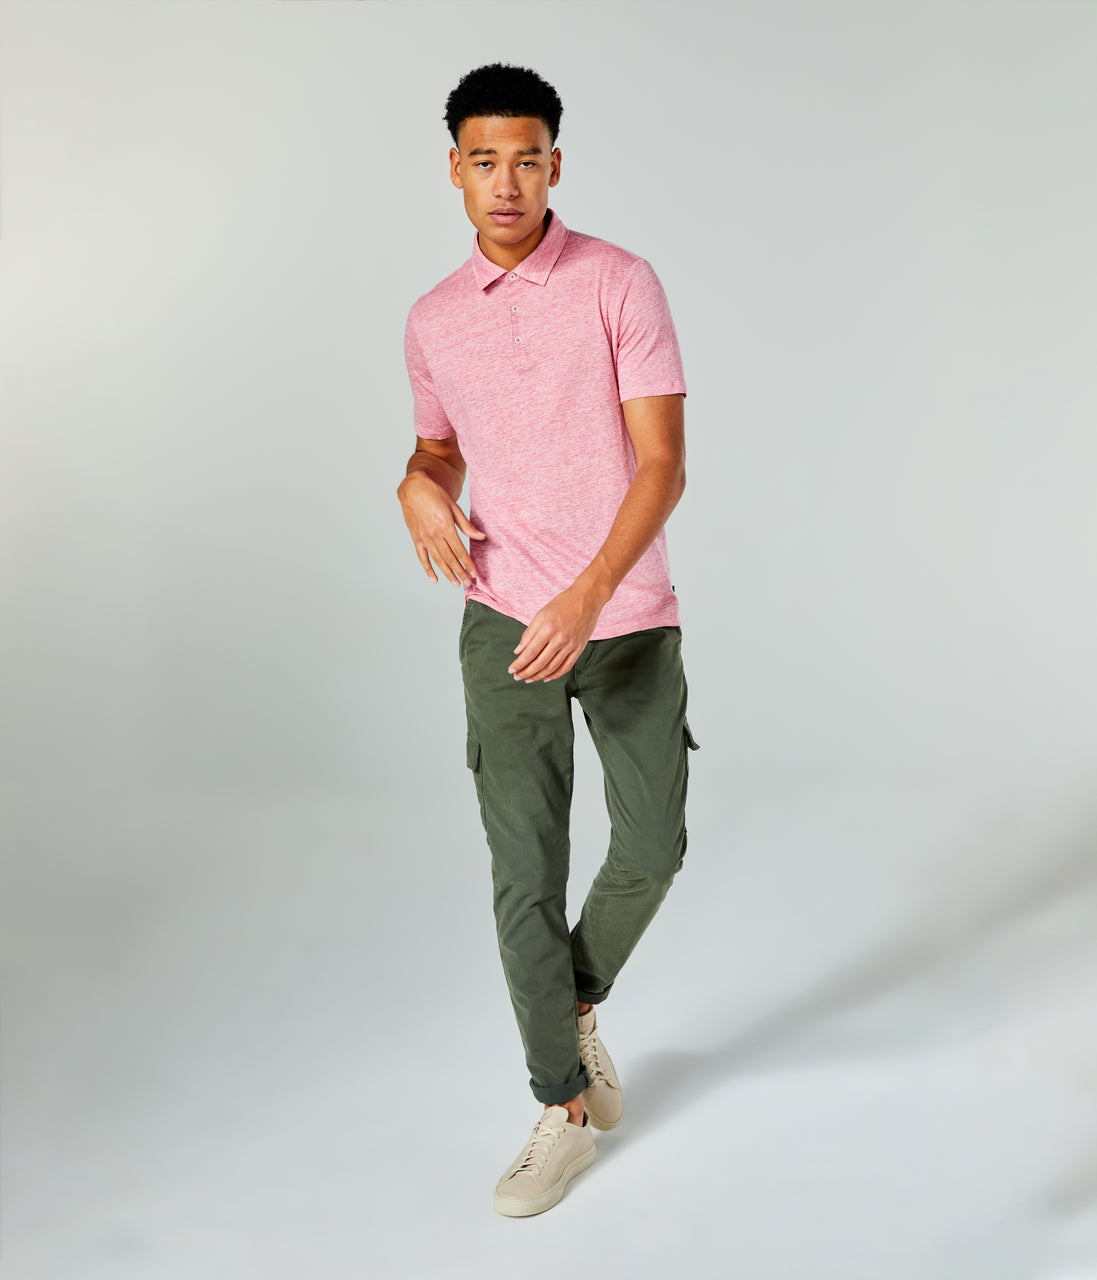 Linen Heather Polo - Hibiscus Heather - Good Man Brand - Linen Heather Polo - Hibiscus Heather